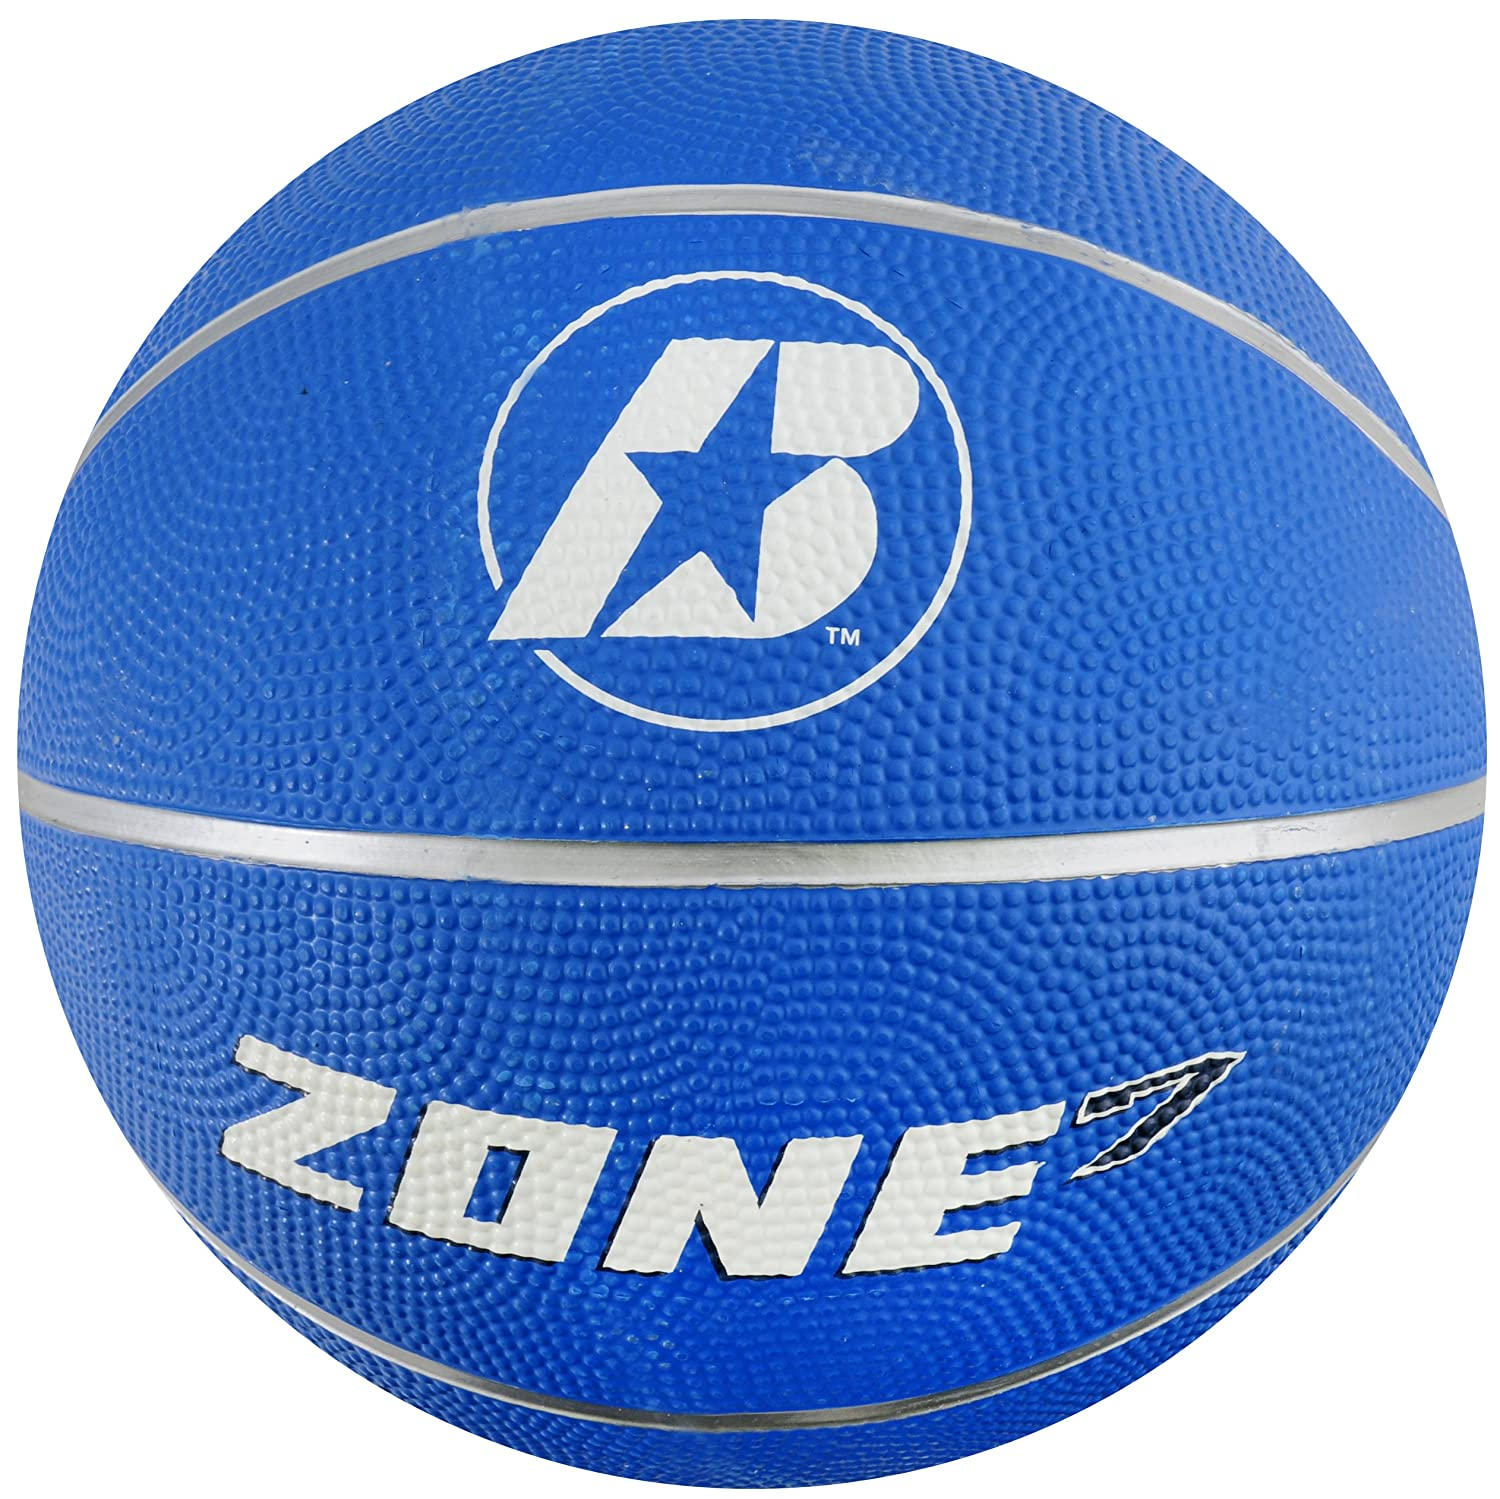 Baden Sports Baden Zone Ballon de Basketball